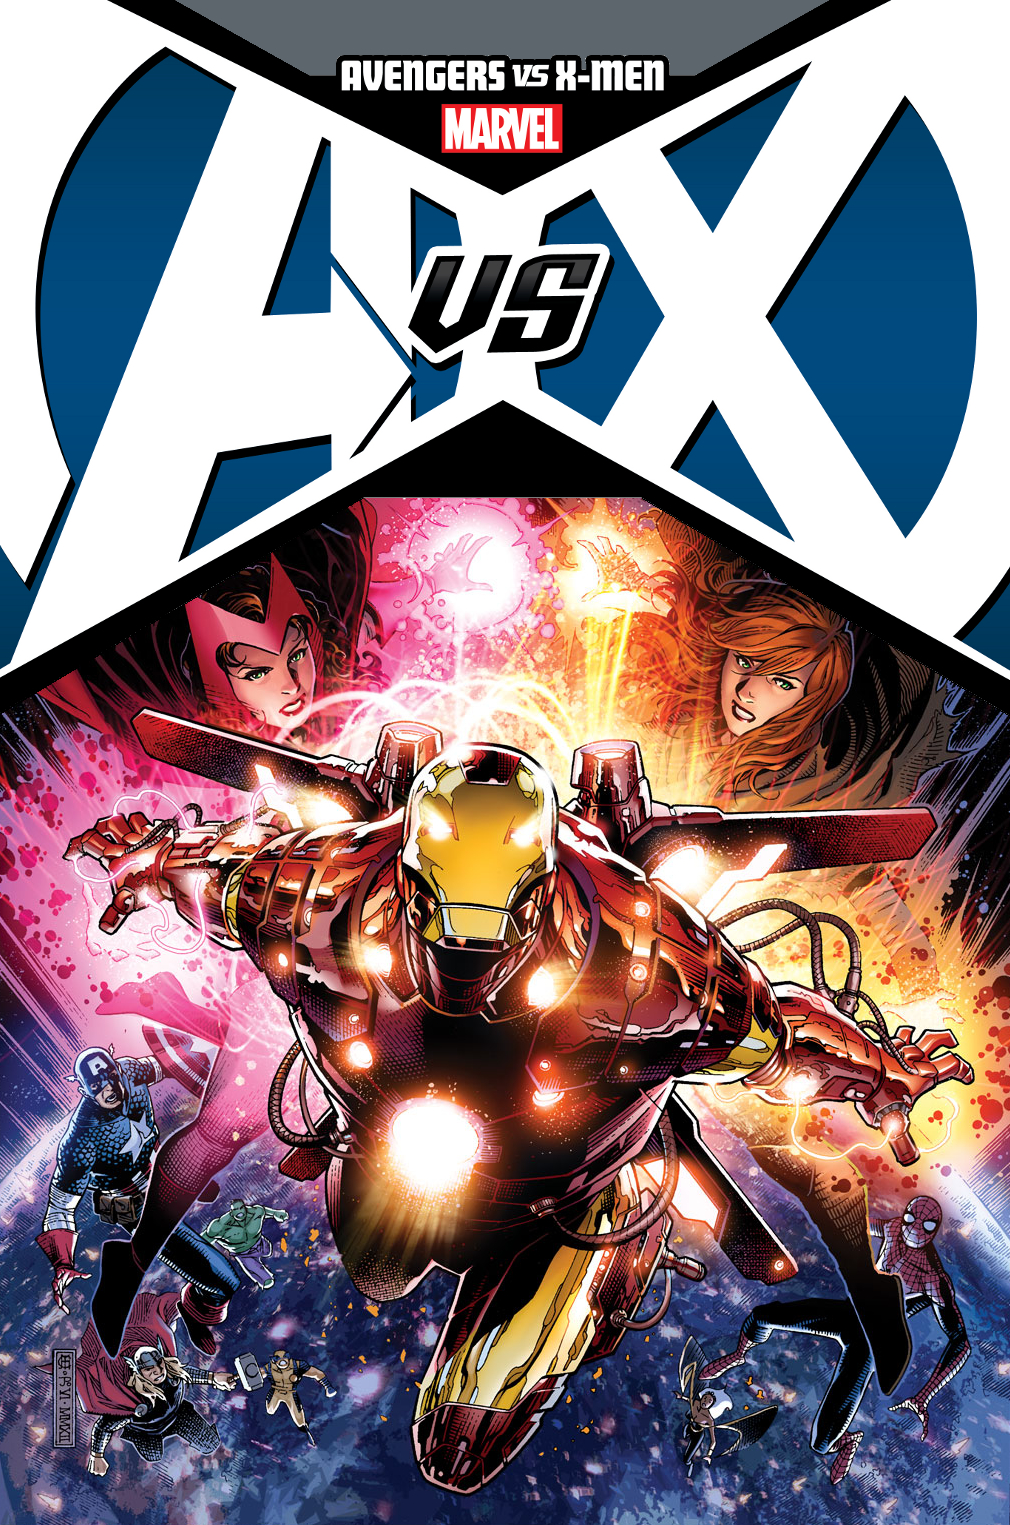 AVENGERS VS X-MEN BY CHEUNG POSTER